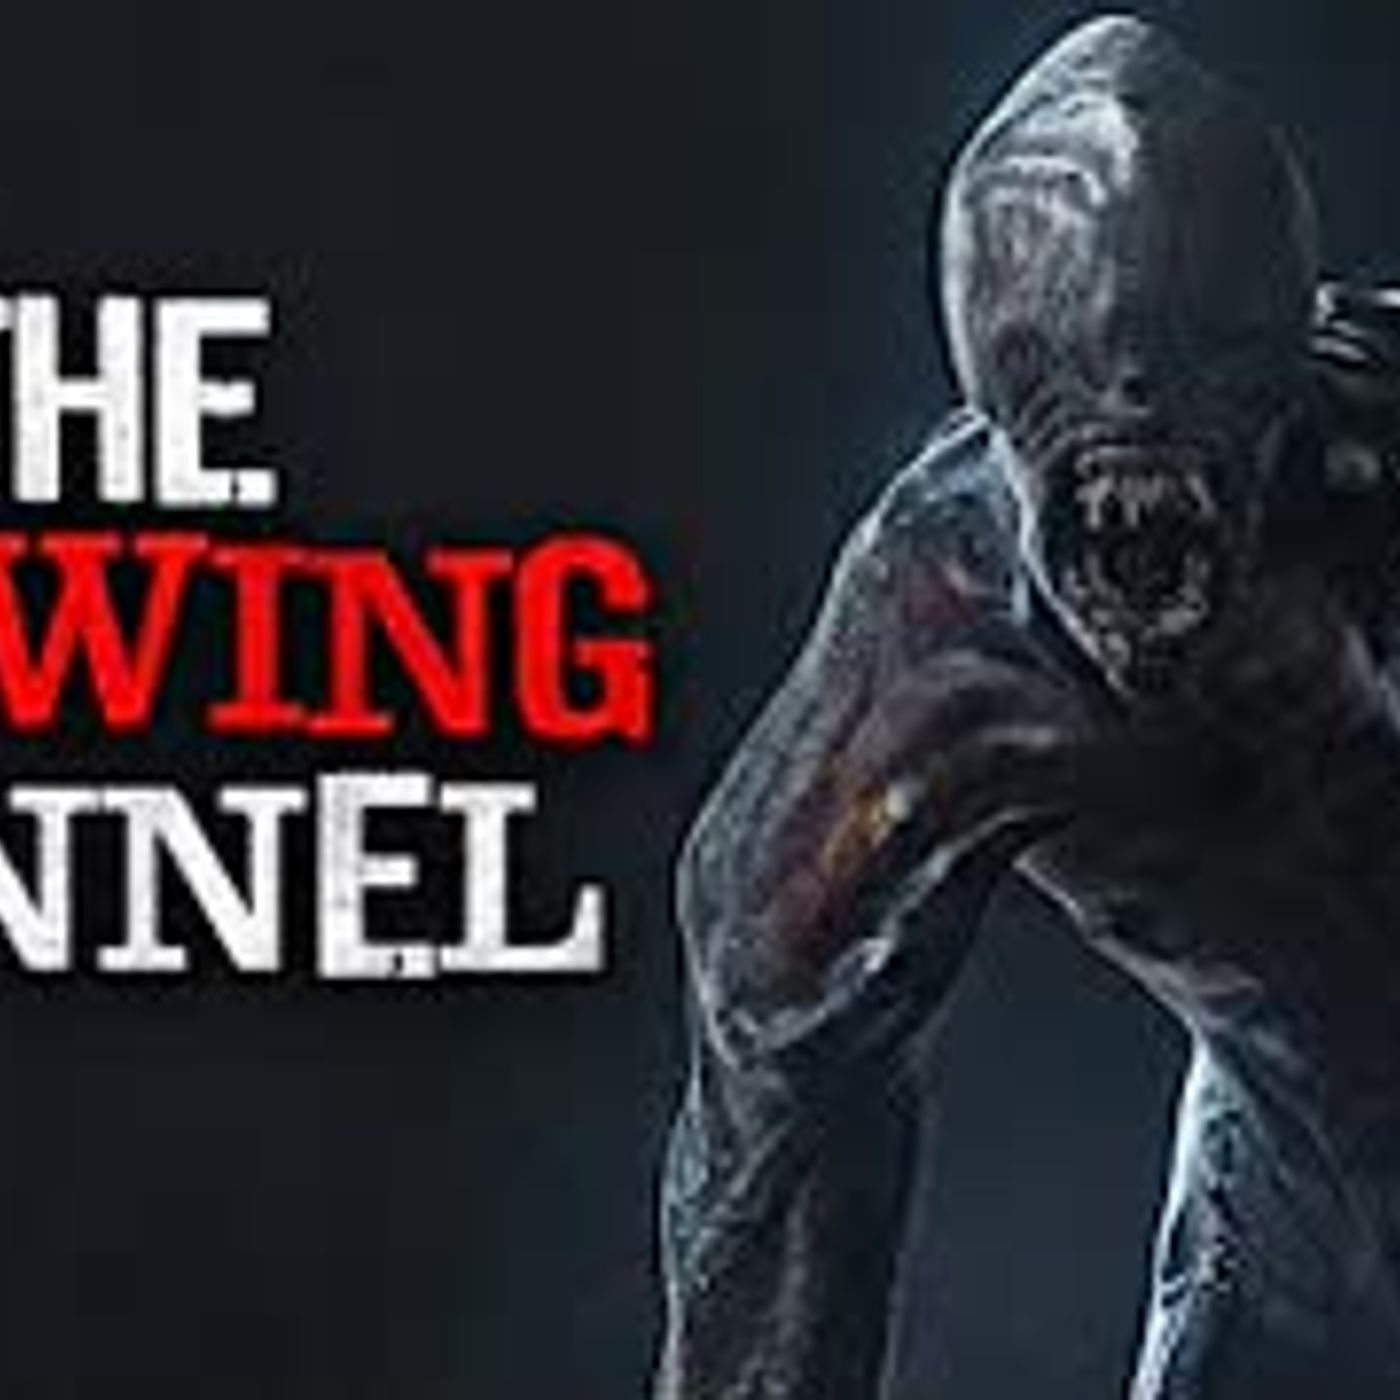 """The Glowing Tunnel"" Creepypasta"